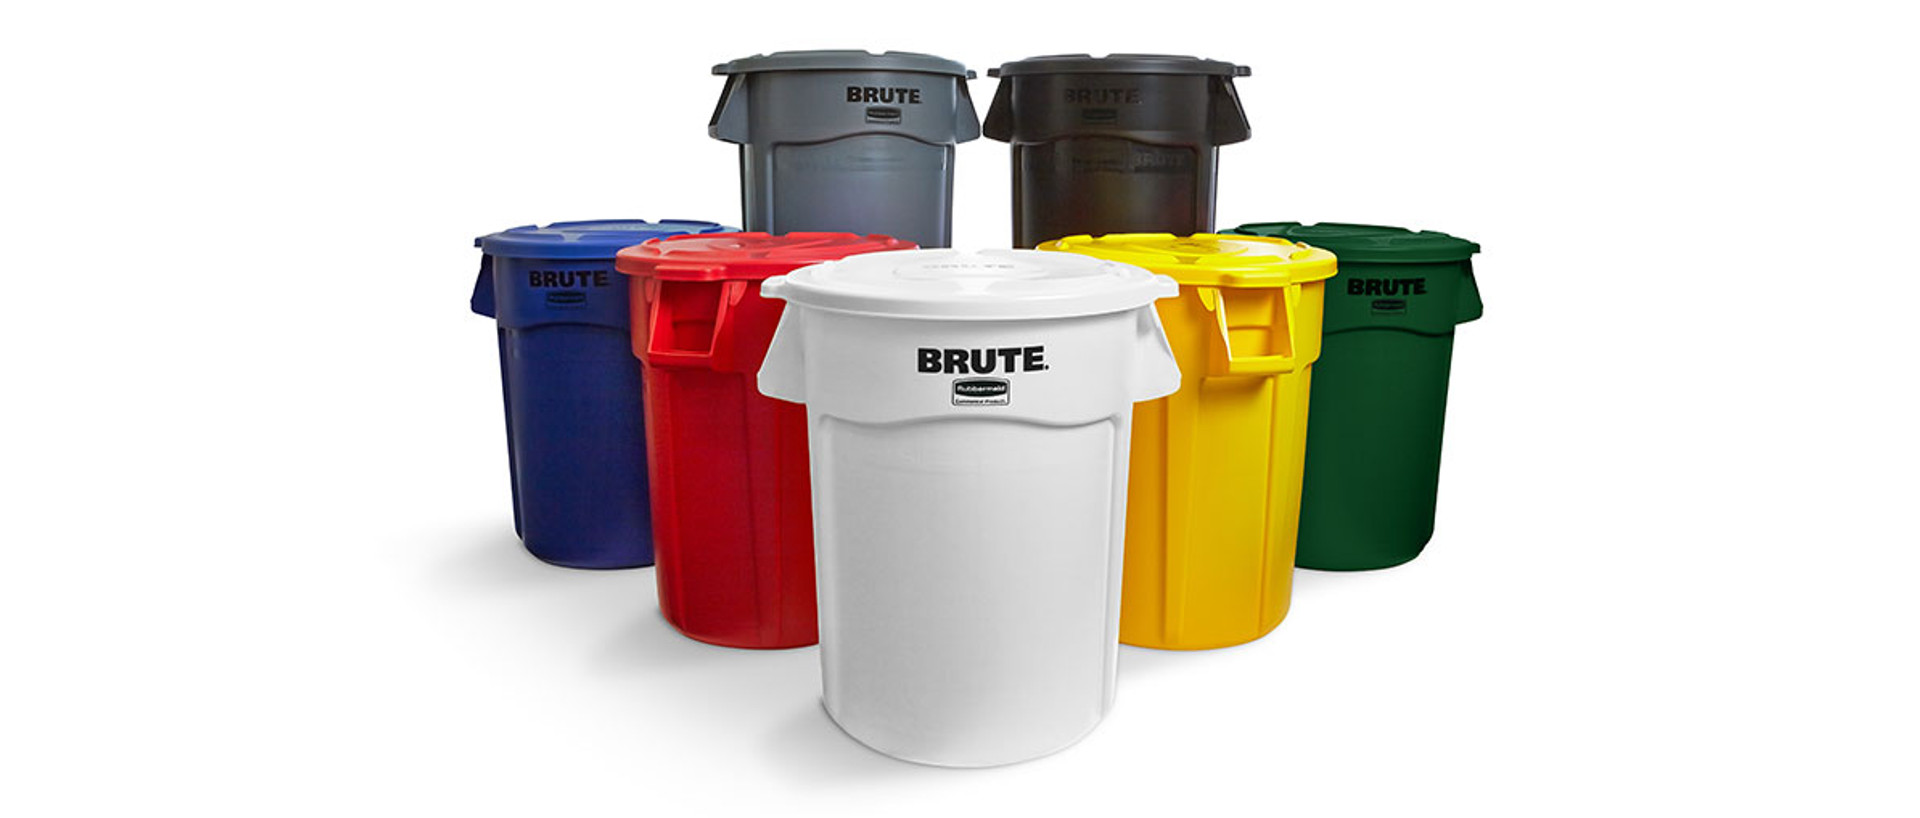 Rubbermaid Brute Container Bins